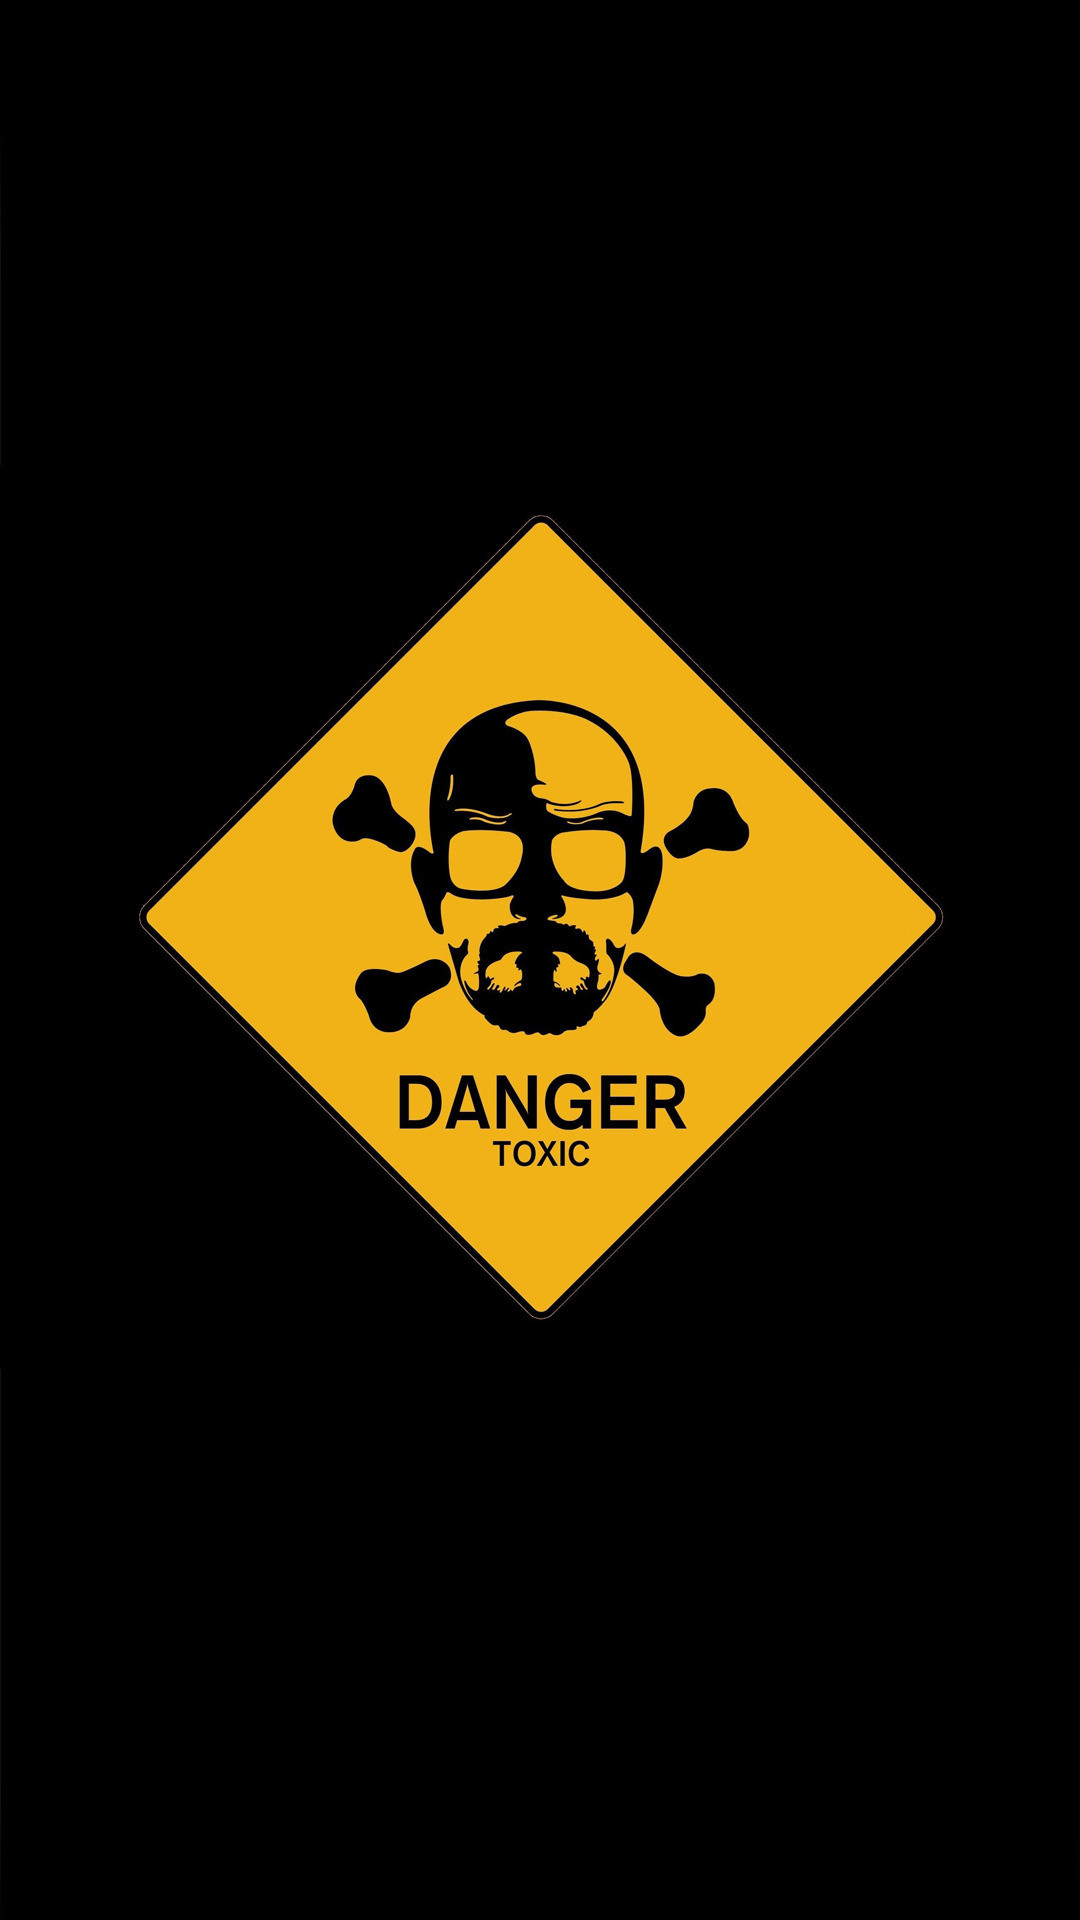 1080x1920 Danger Toxic Breaking Bad Walter White Android Wallpaper ...